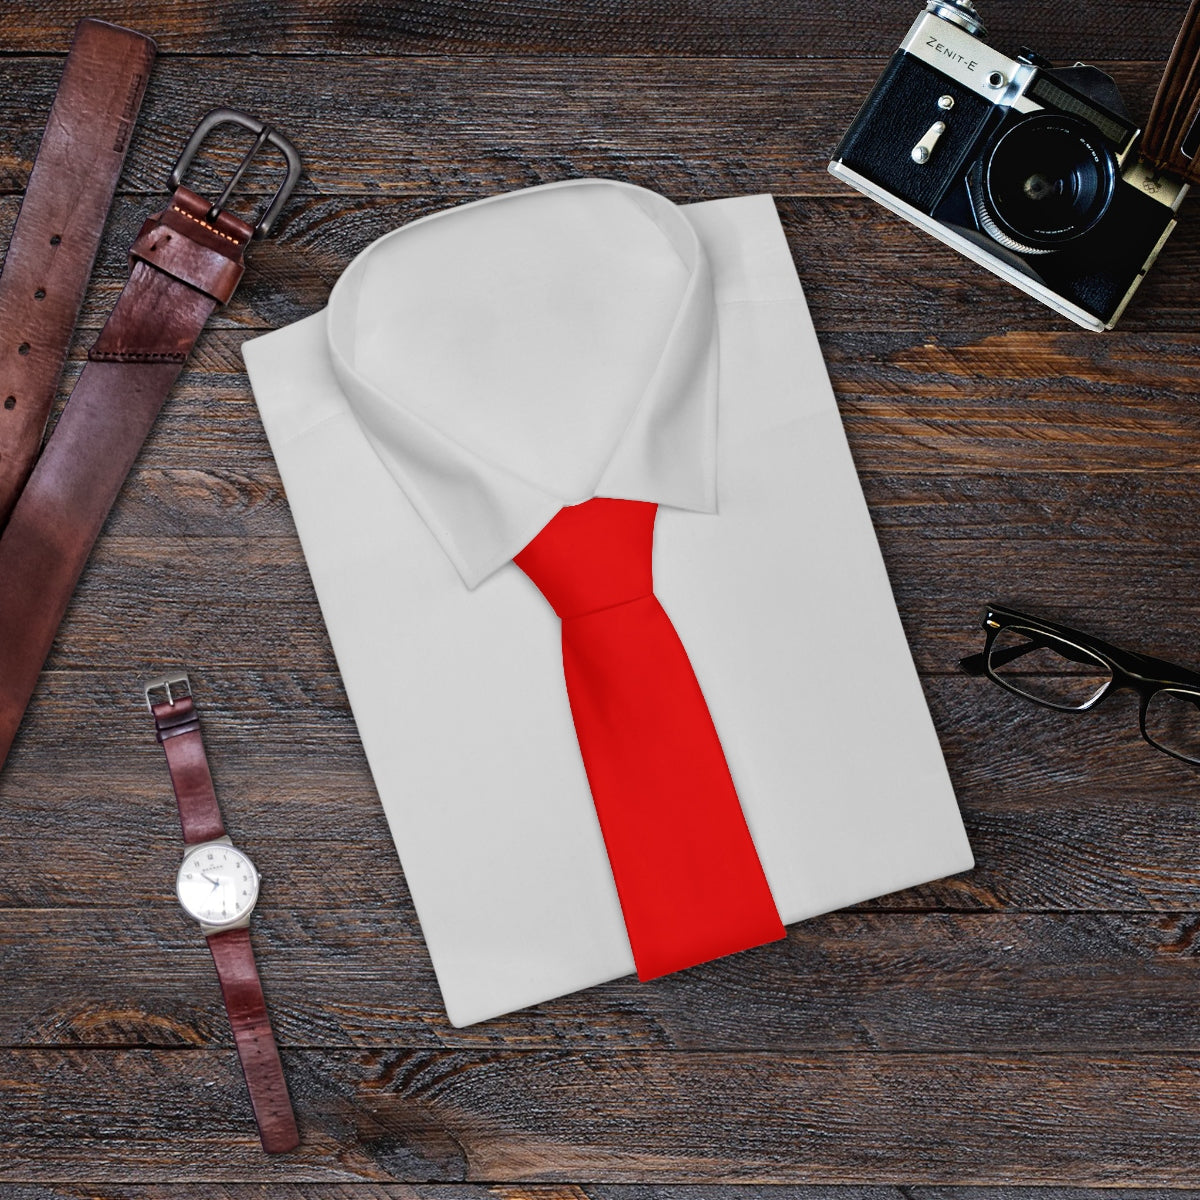 Hot Red Solid Color Printed Soft Satin Finish Classic Mens Fashion Necktie- Made in USA-Necktie-One Size-Heidi Kimura Art LLC